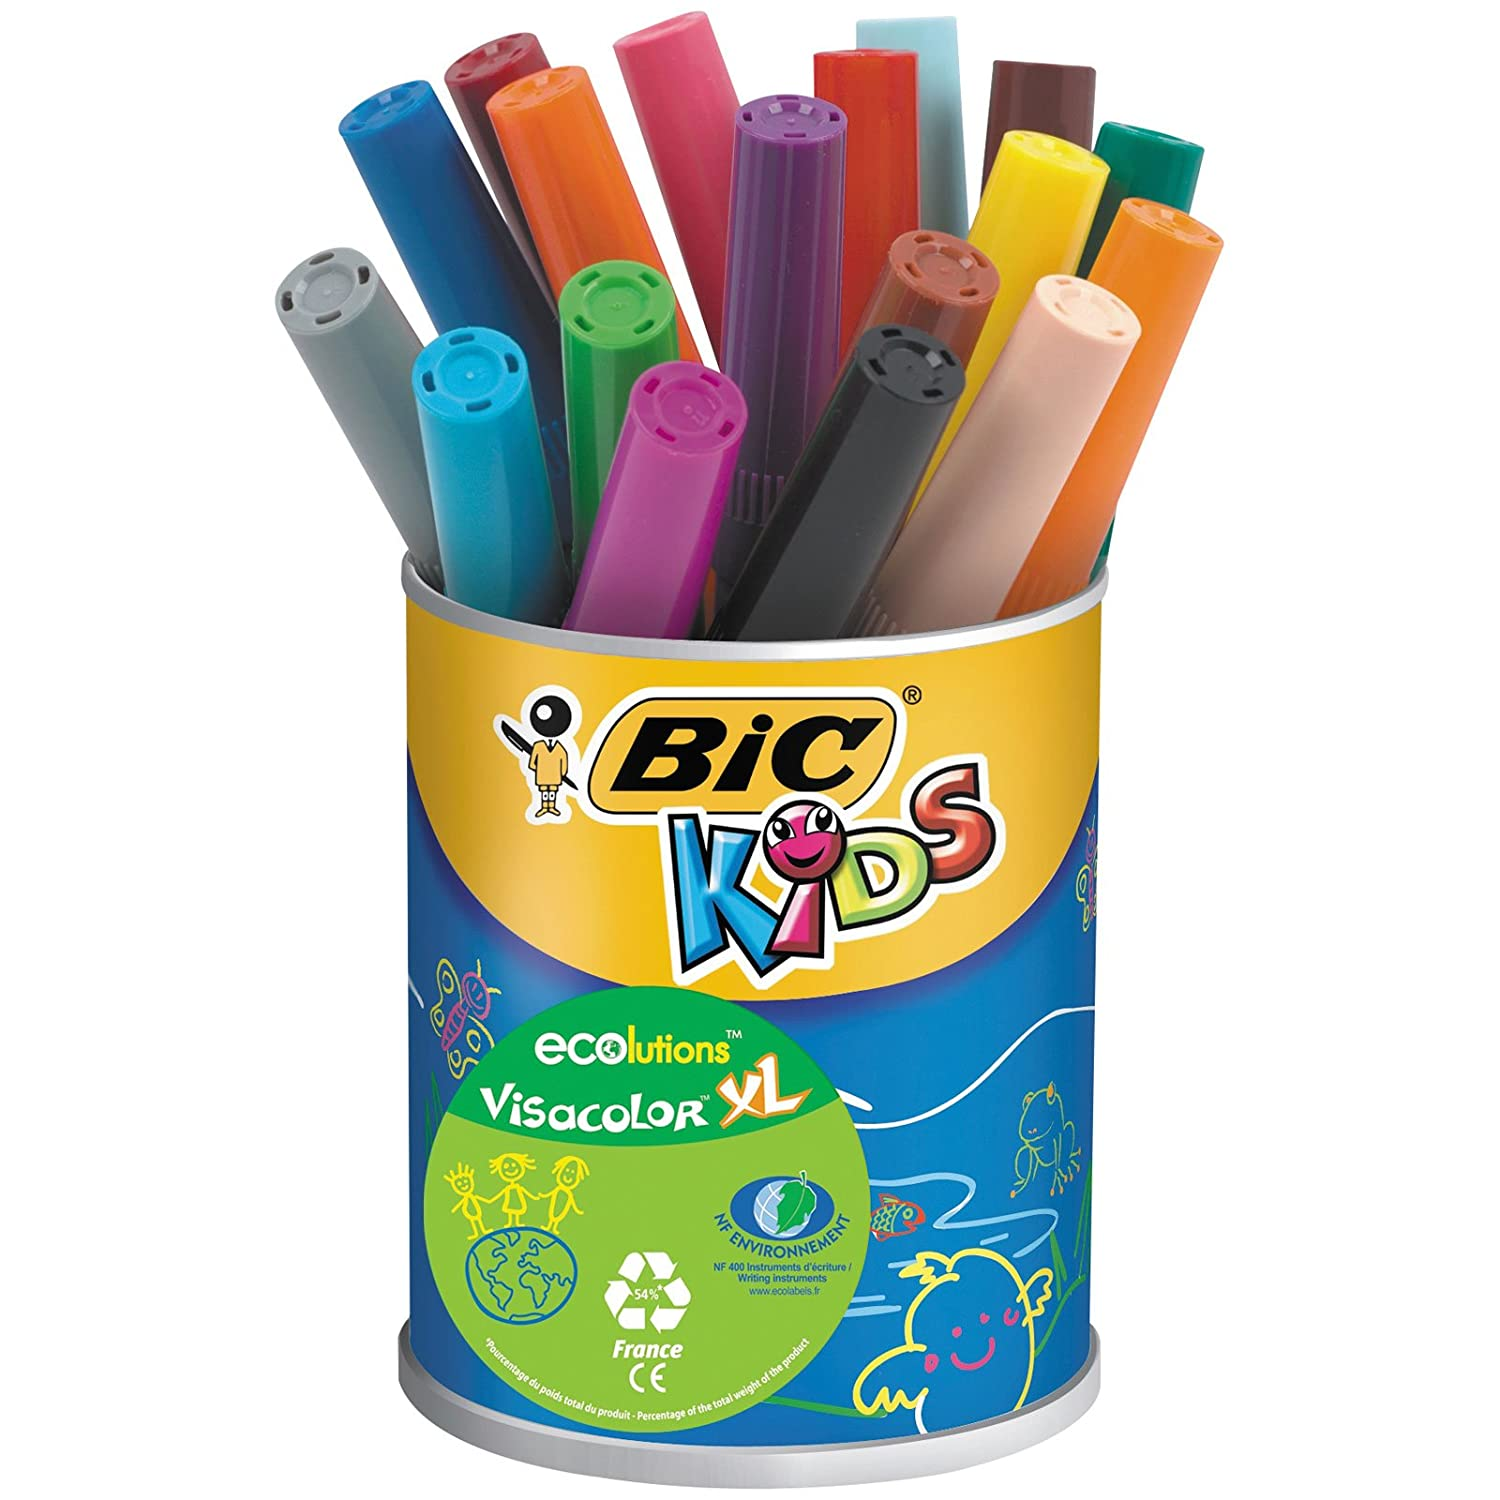 BIC Kids Visacolor XL Ecolutions Feutres de Coloriage - Pot de 18 892224